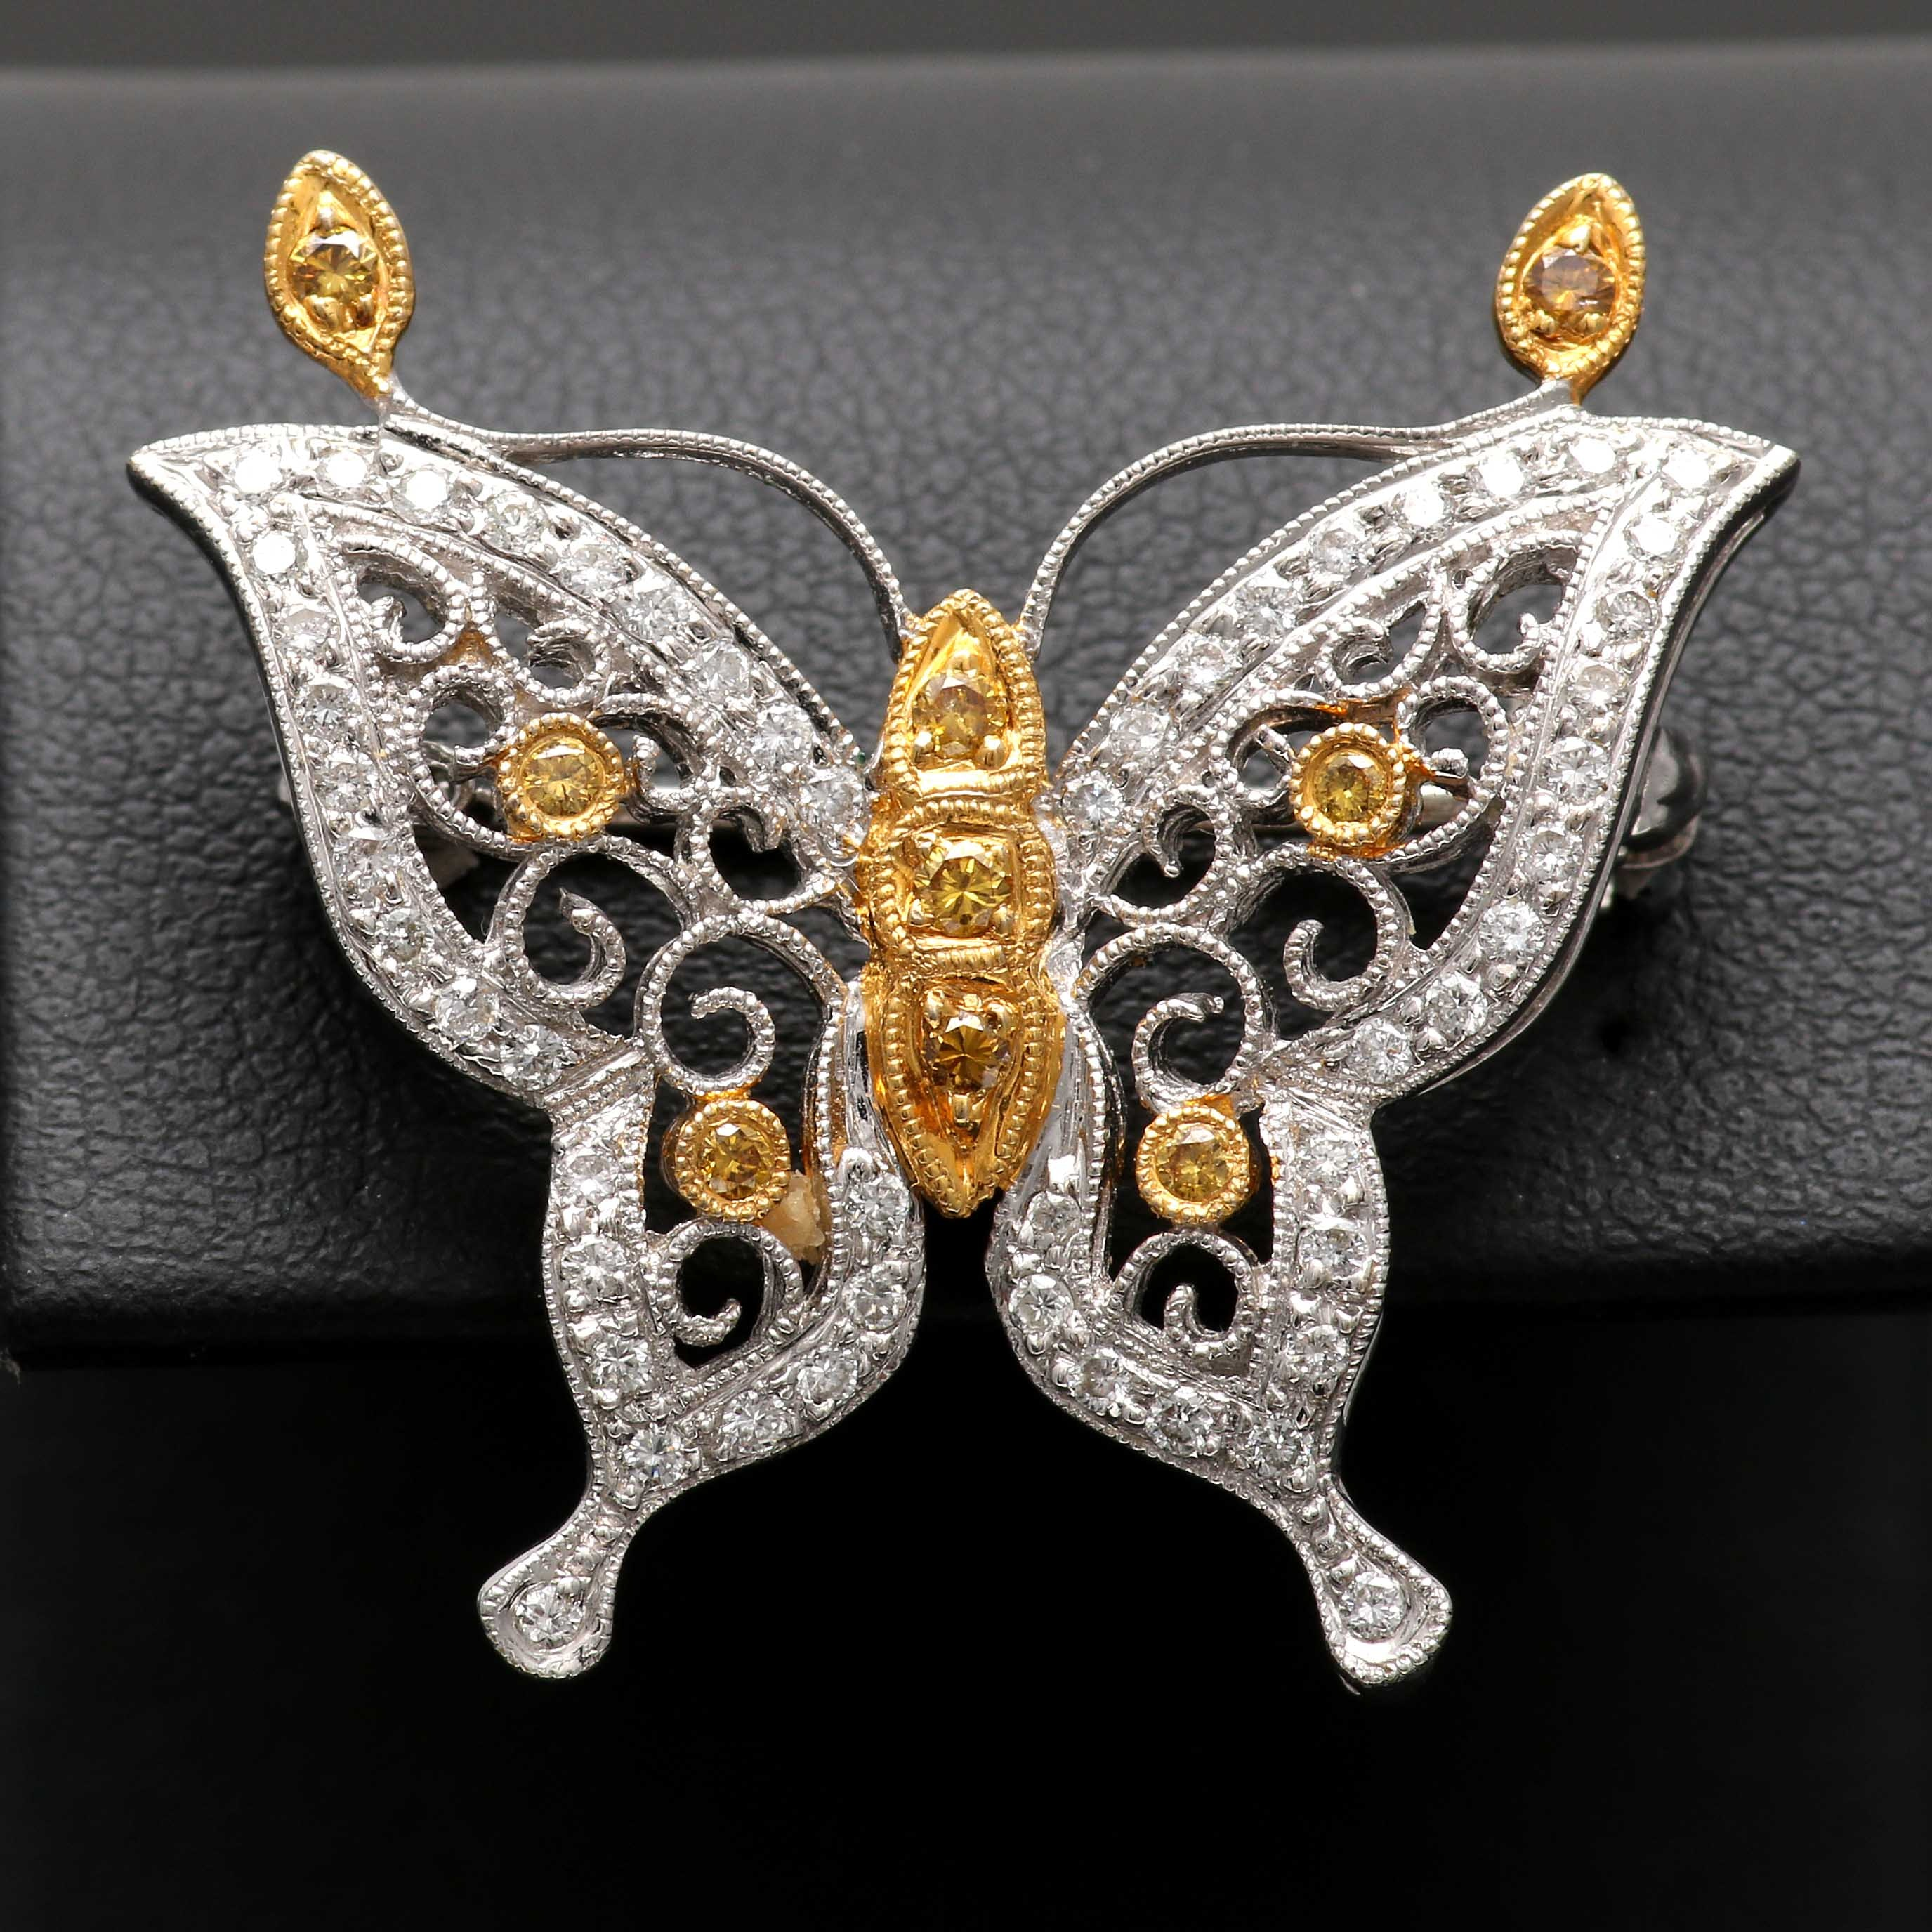 18K White and Yellow Gold Diamond Butterfly Pendant Brooch